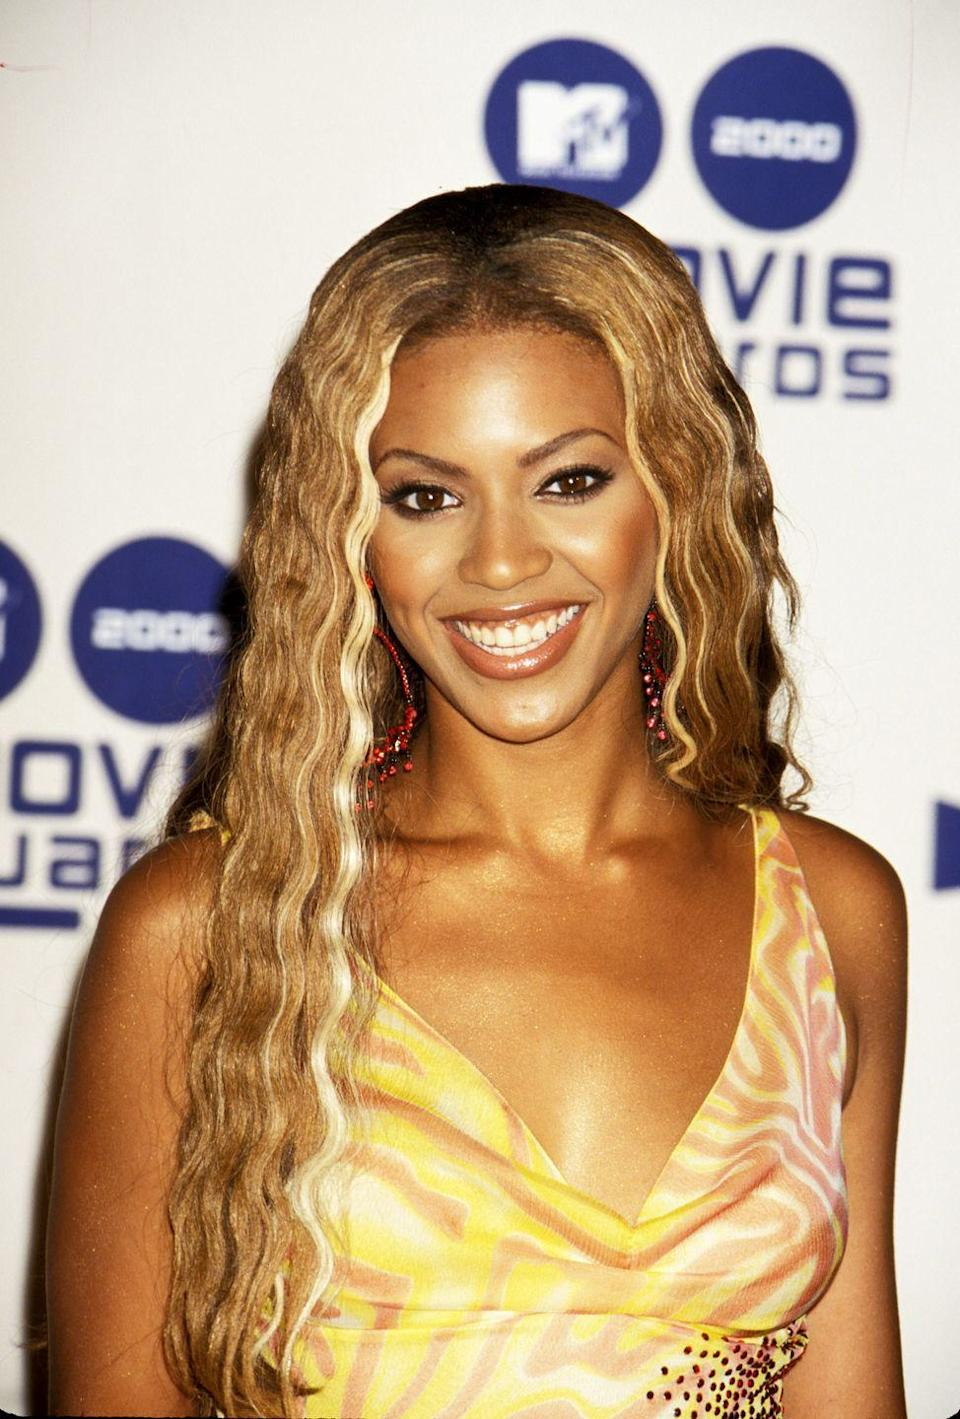 "<p>The 2000s started to see more wearable colors and cuts. Case in point: Beyonce's wavy, <a href=""https://www.goodhousekeeping.com/beauty/hair/news/g2443/blonde-hair-color-ideas/"" rel=""nofollow noopener"" target=""_blank"" data-ylk=""slk:honey blonde"" class=""link rapid-noclick-resp"">honey blonde</a> hair.</p>"